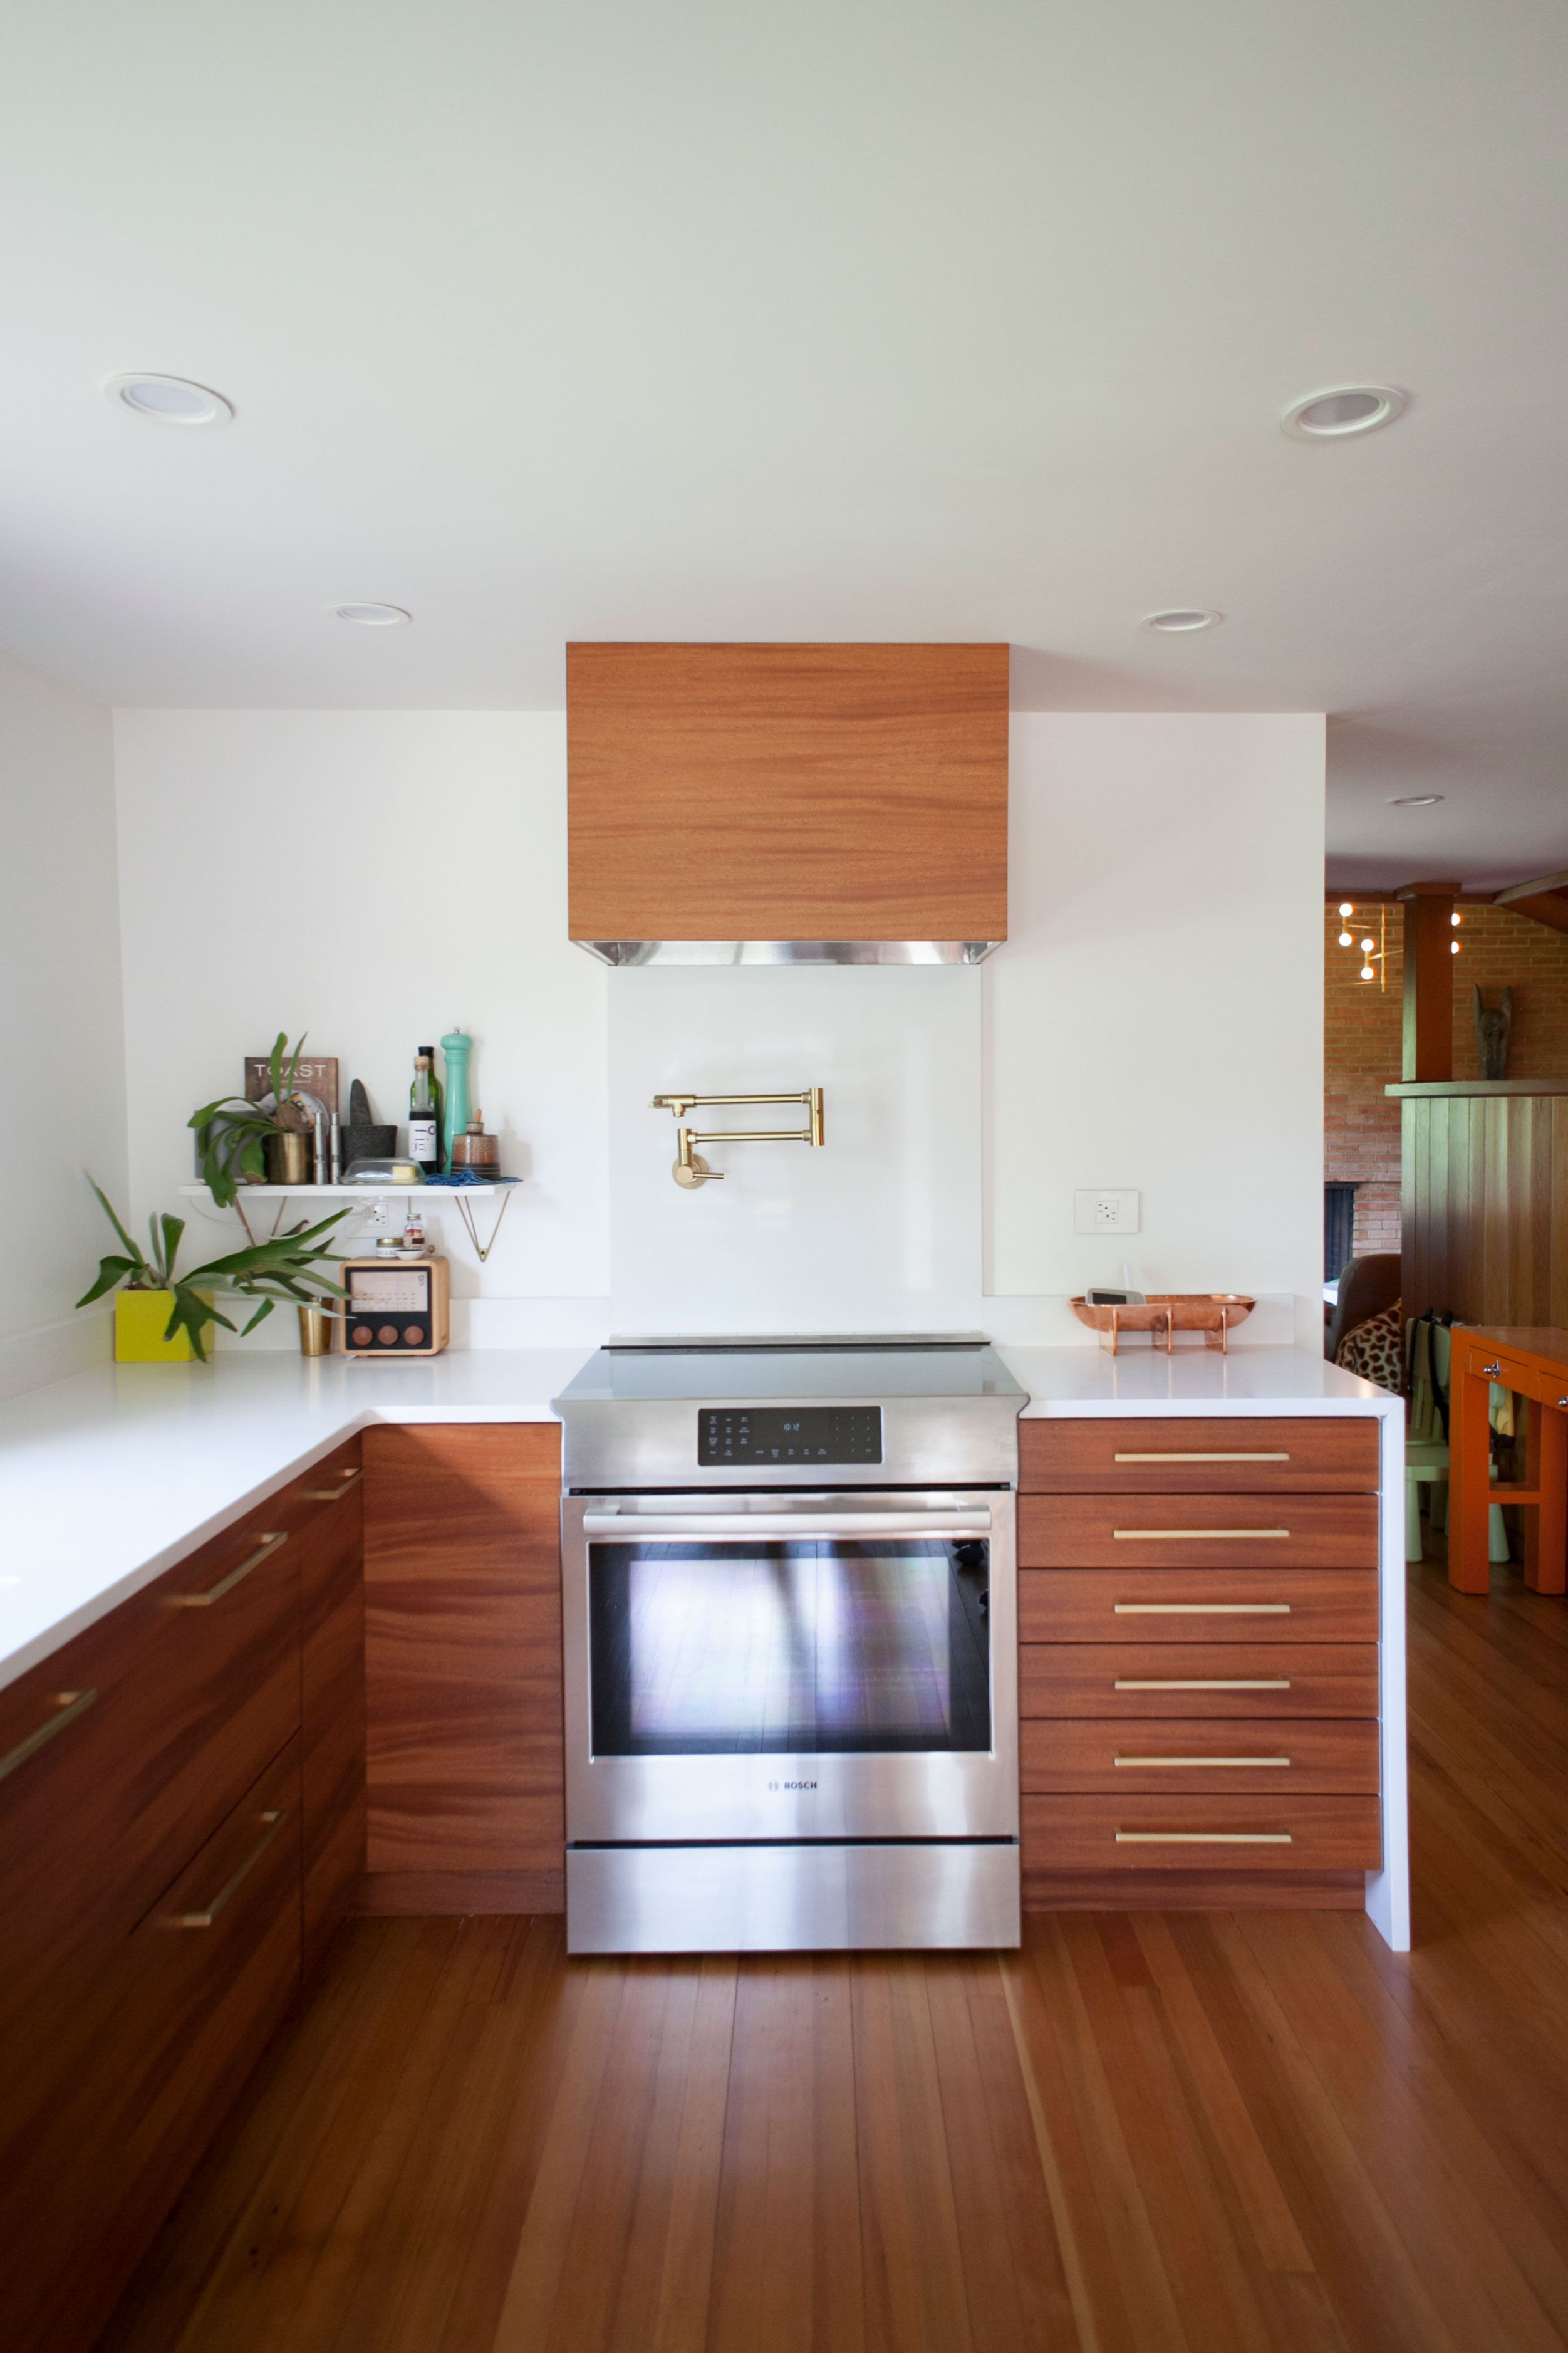 Kitchen Designers Portland Oregon Michelle & Jeff's Chic & Playful Blend  Minimalist Modern